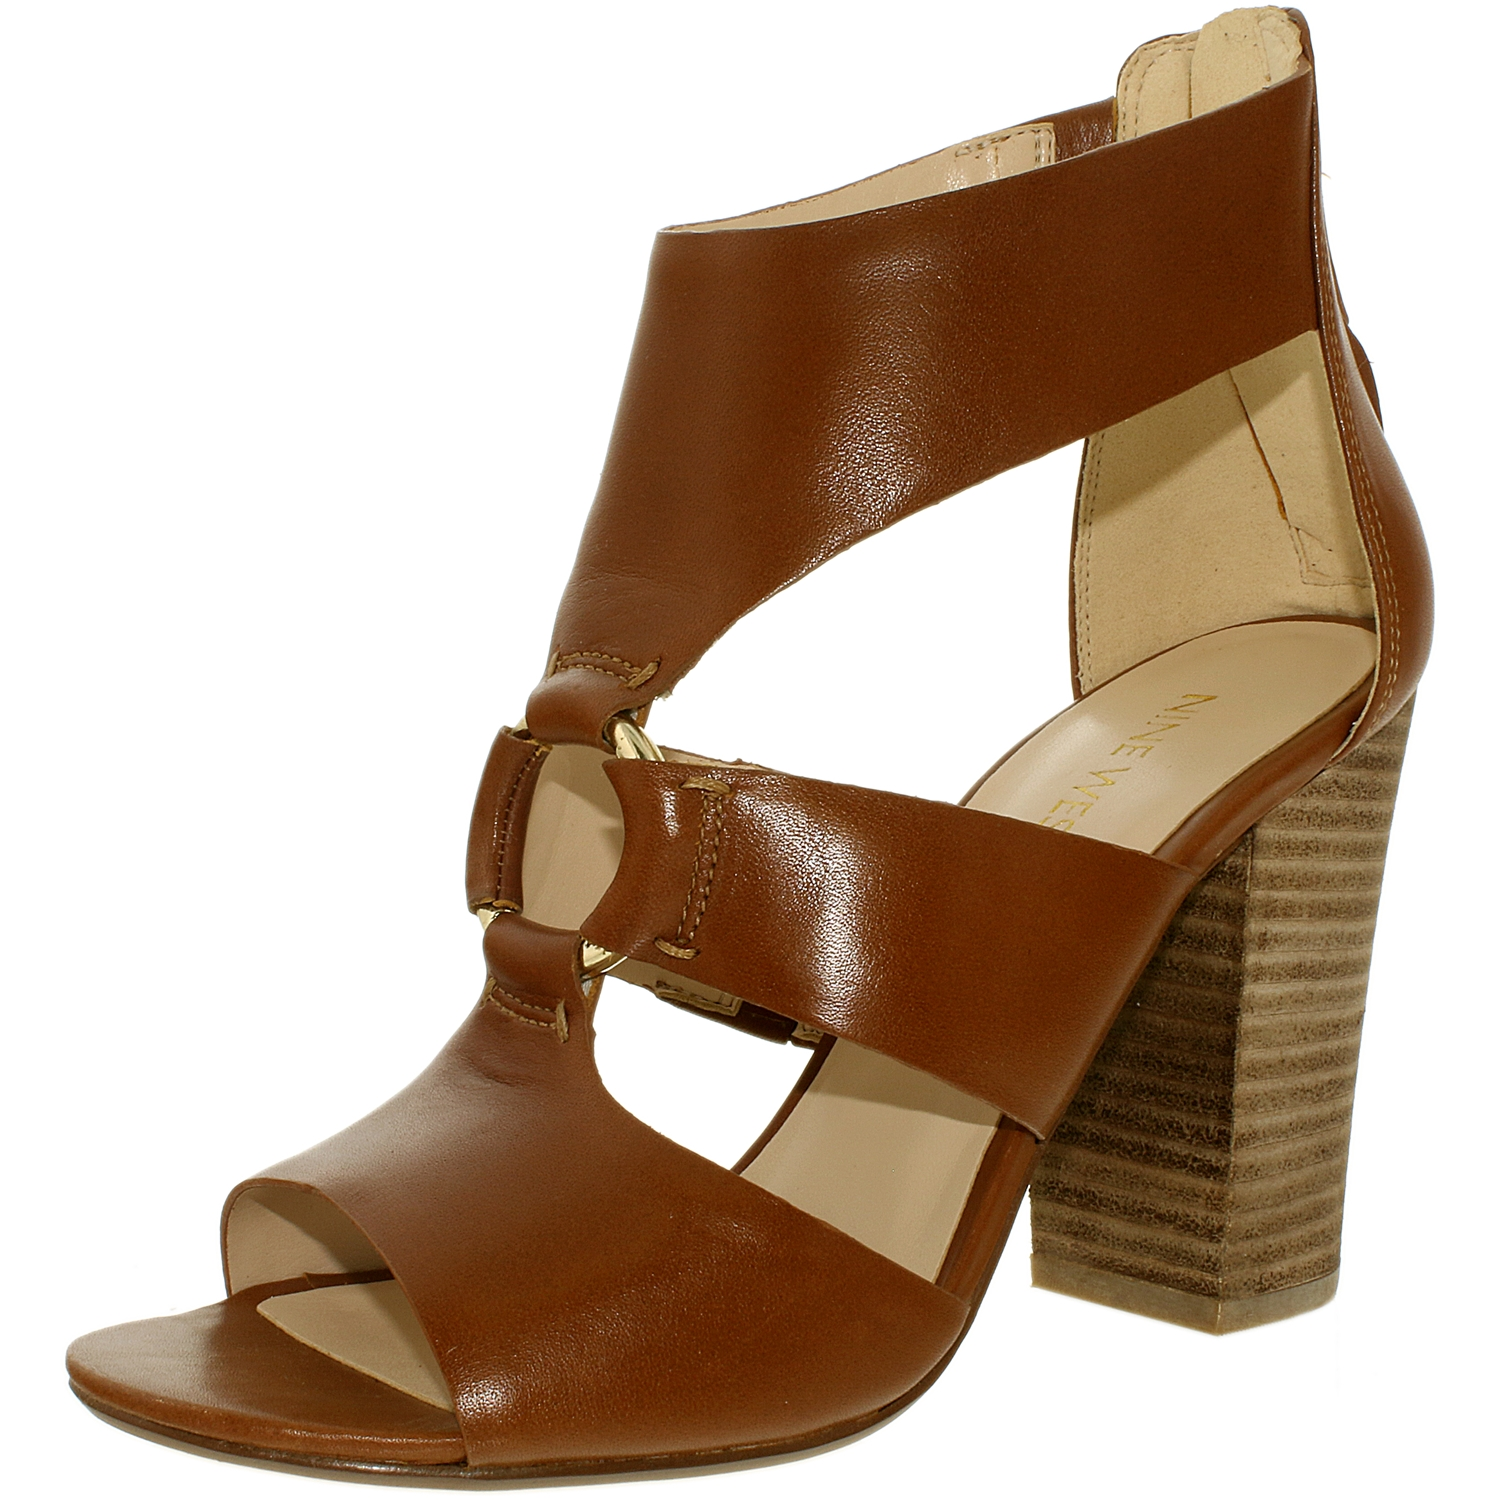 Nine West Women's Roamah Leather Cognac Ankle-High Pump - 8.5M